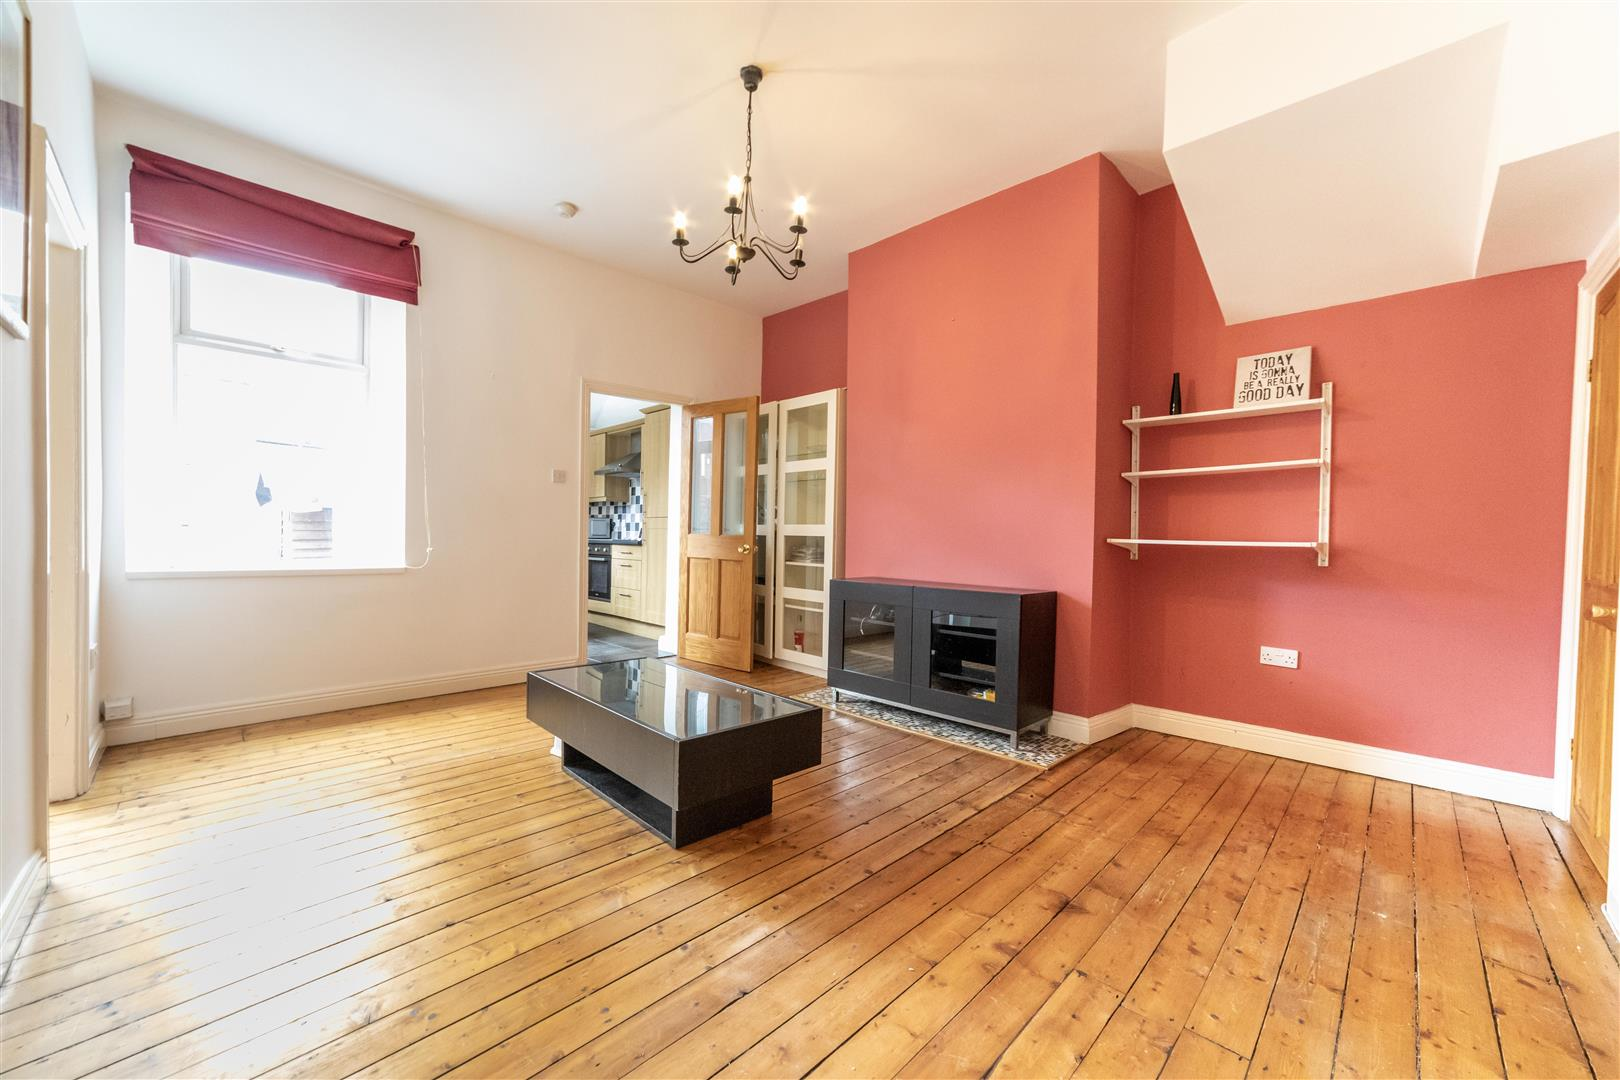 2 bed flat to rent in Newcastle Upon Tyne, NE2 1RB, NE2